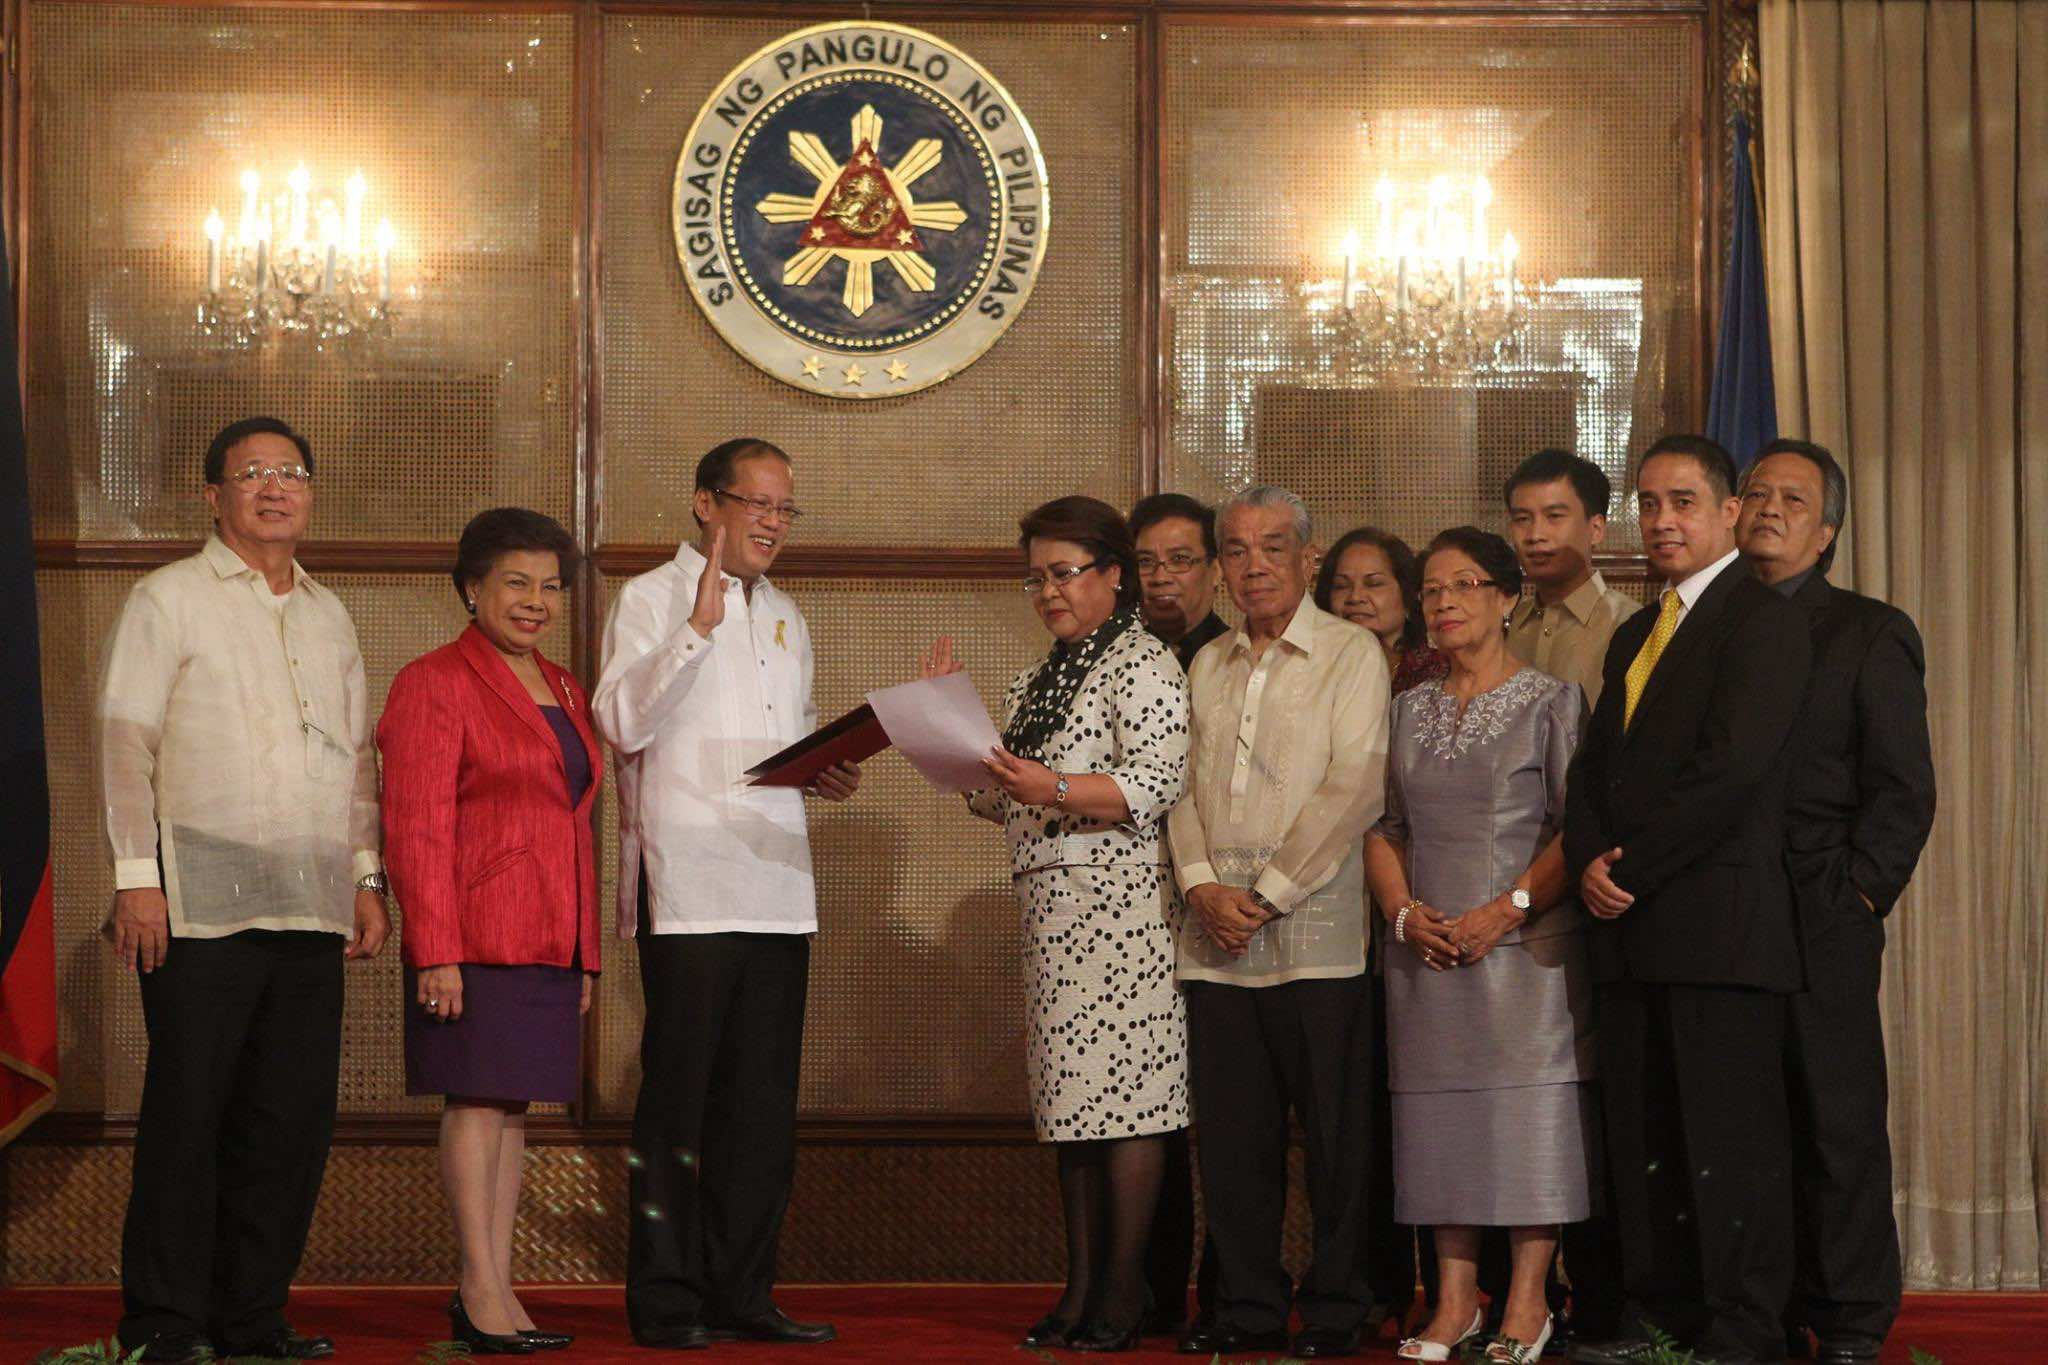 OATH-TAKING. De Lima with her family at her oath-taking as justice secretary in 2010. Sourced photo